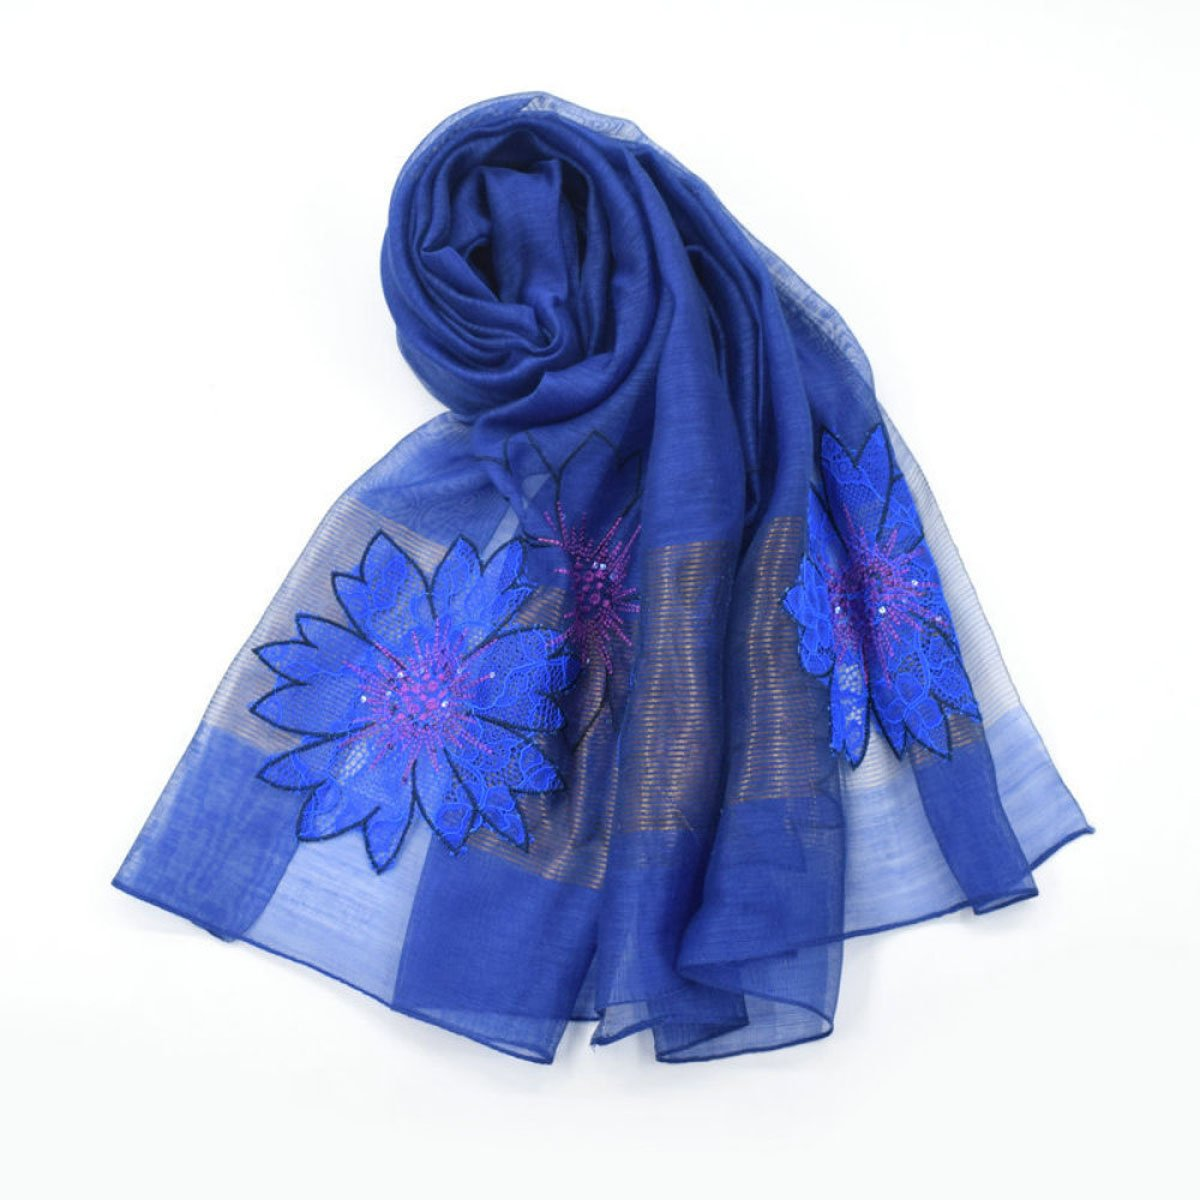 B JUN Silk Scarf Long Section Wild Print Embroidery Embroidery Scarf Shawls Beach Scarf Seasons (Length  190  80cm, Packing of 1) (color   H)